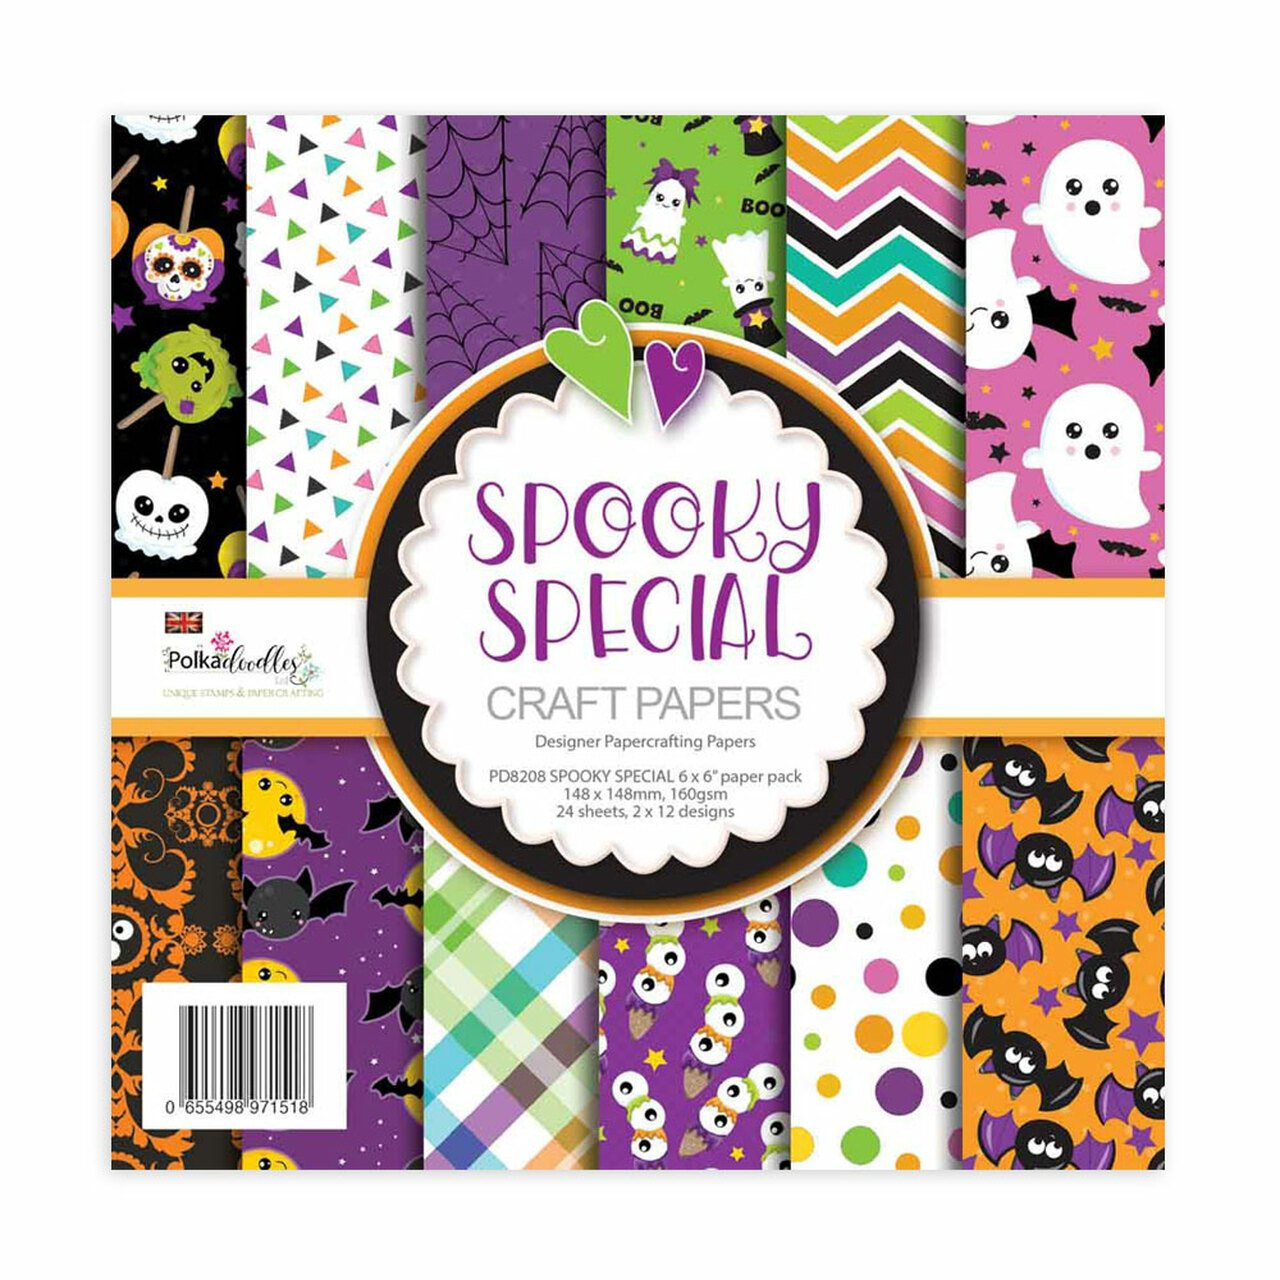 Polkadoodles - Spookly Special - 6x6 Paper Pack